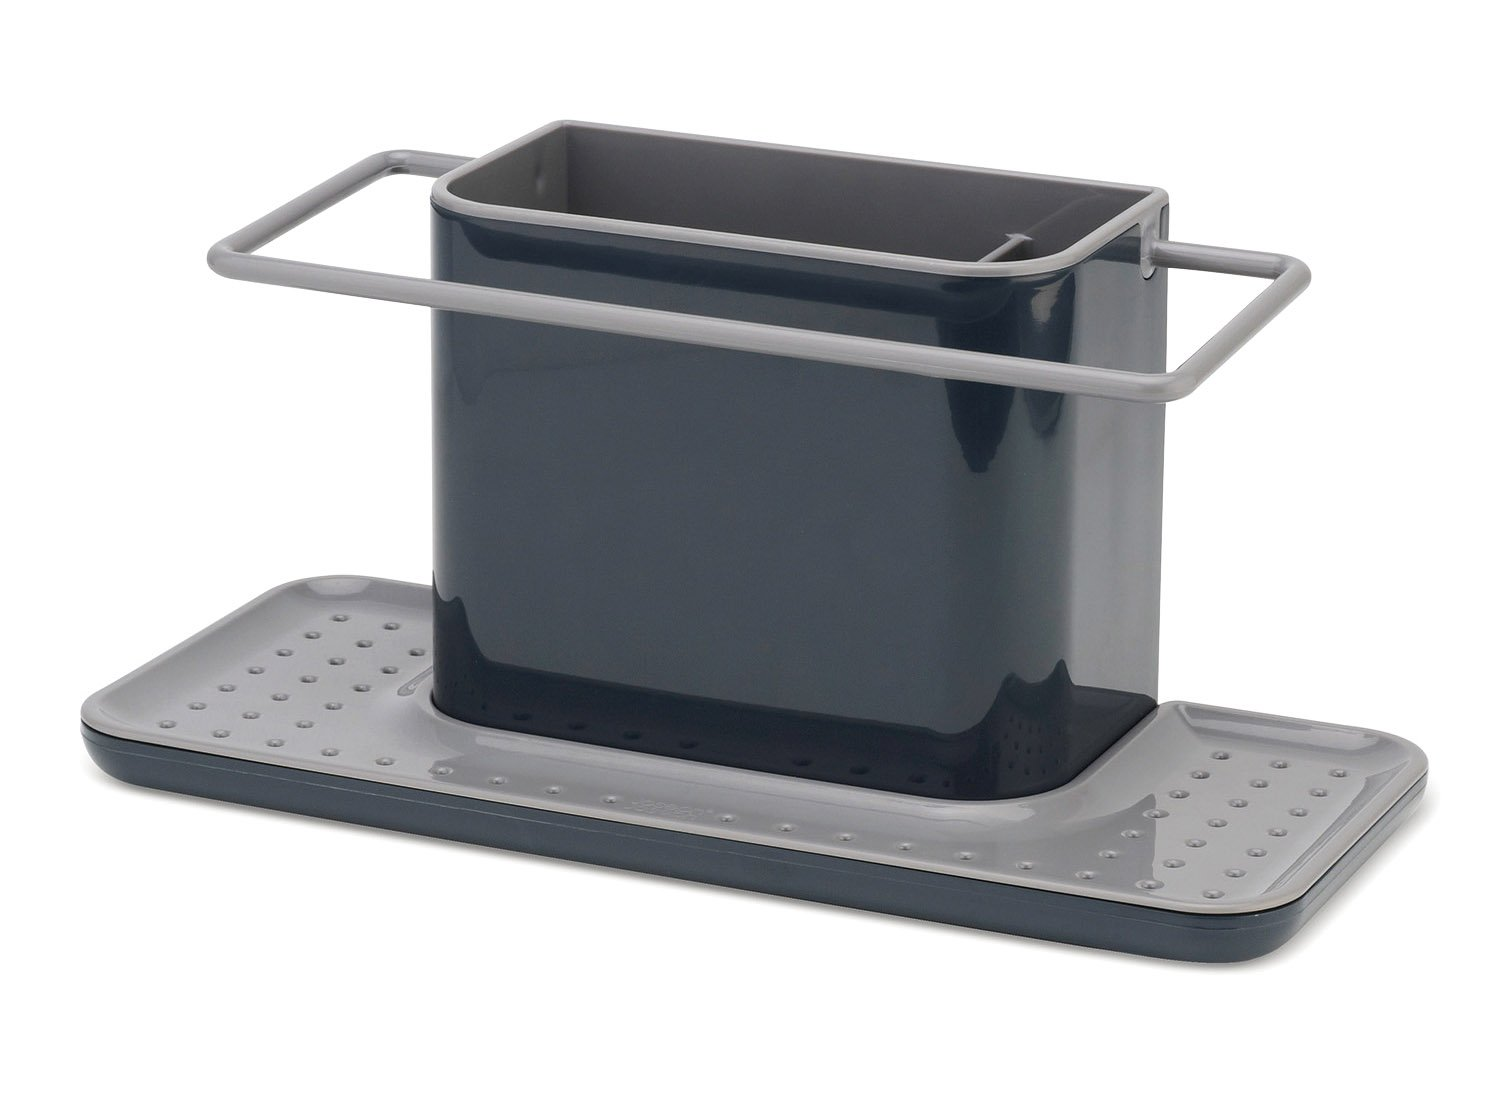 Joseph Joseph 85070 Sink Caddy Kitchen Sink Organizer Sponge Holder Dishwasher-Safe, Large, Gray